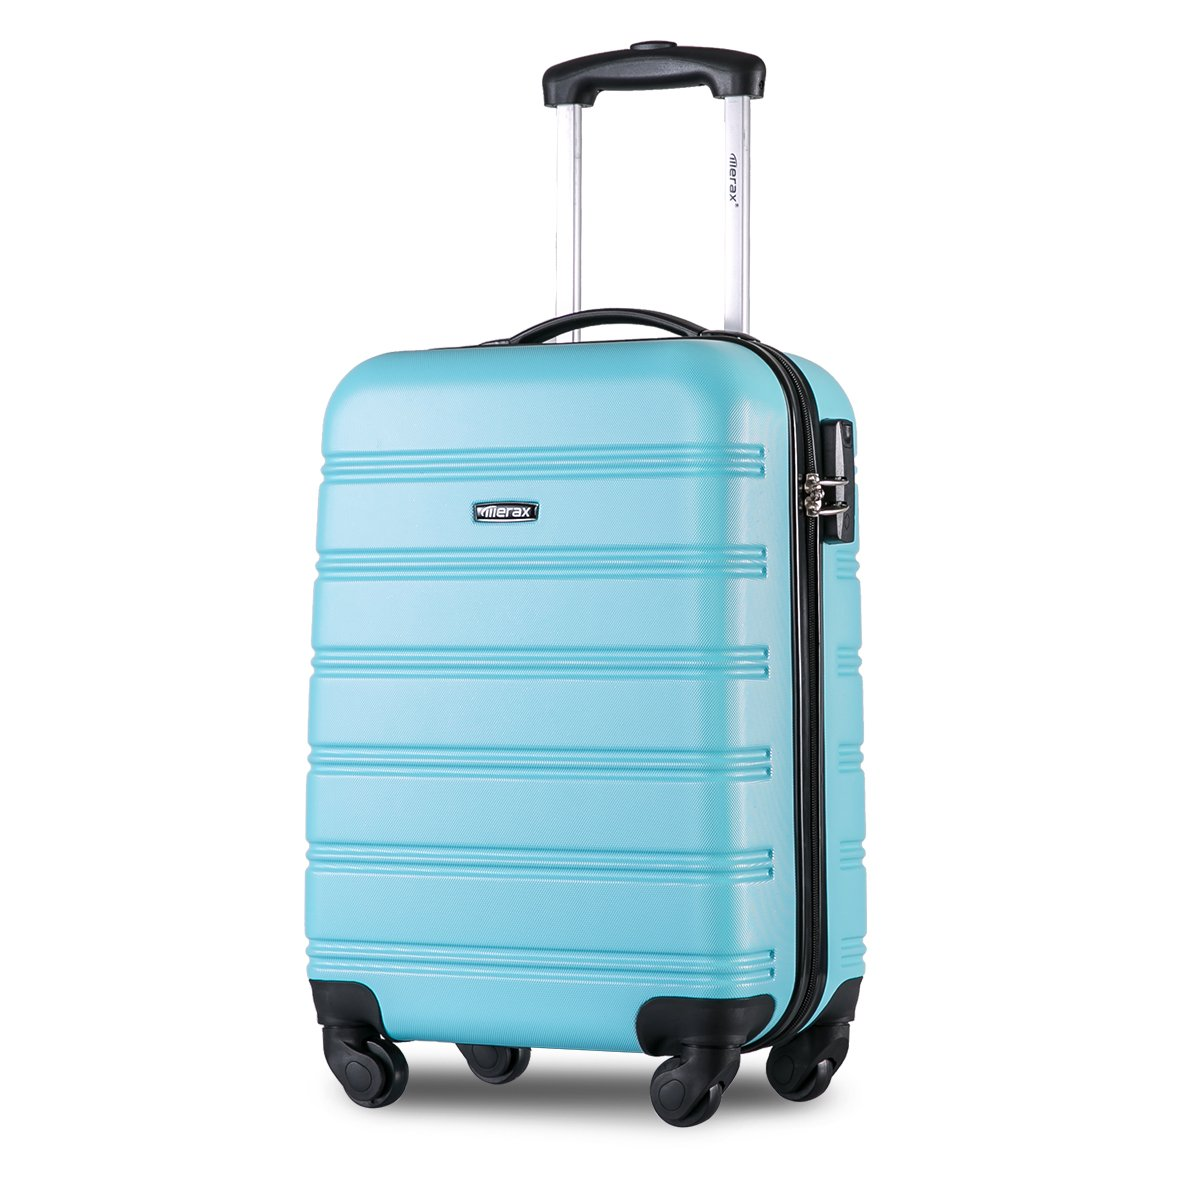 Merax ® Super Lightweight ABS Hard Shell Travel Carry On Cabin Hand Luggage Suitcase with 4 Wheels, Approved for Ryanair, Easyjet, British Airways, Virgin Atlantic, Flybe and Many More